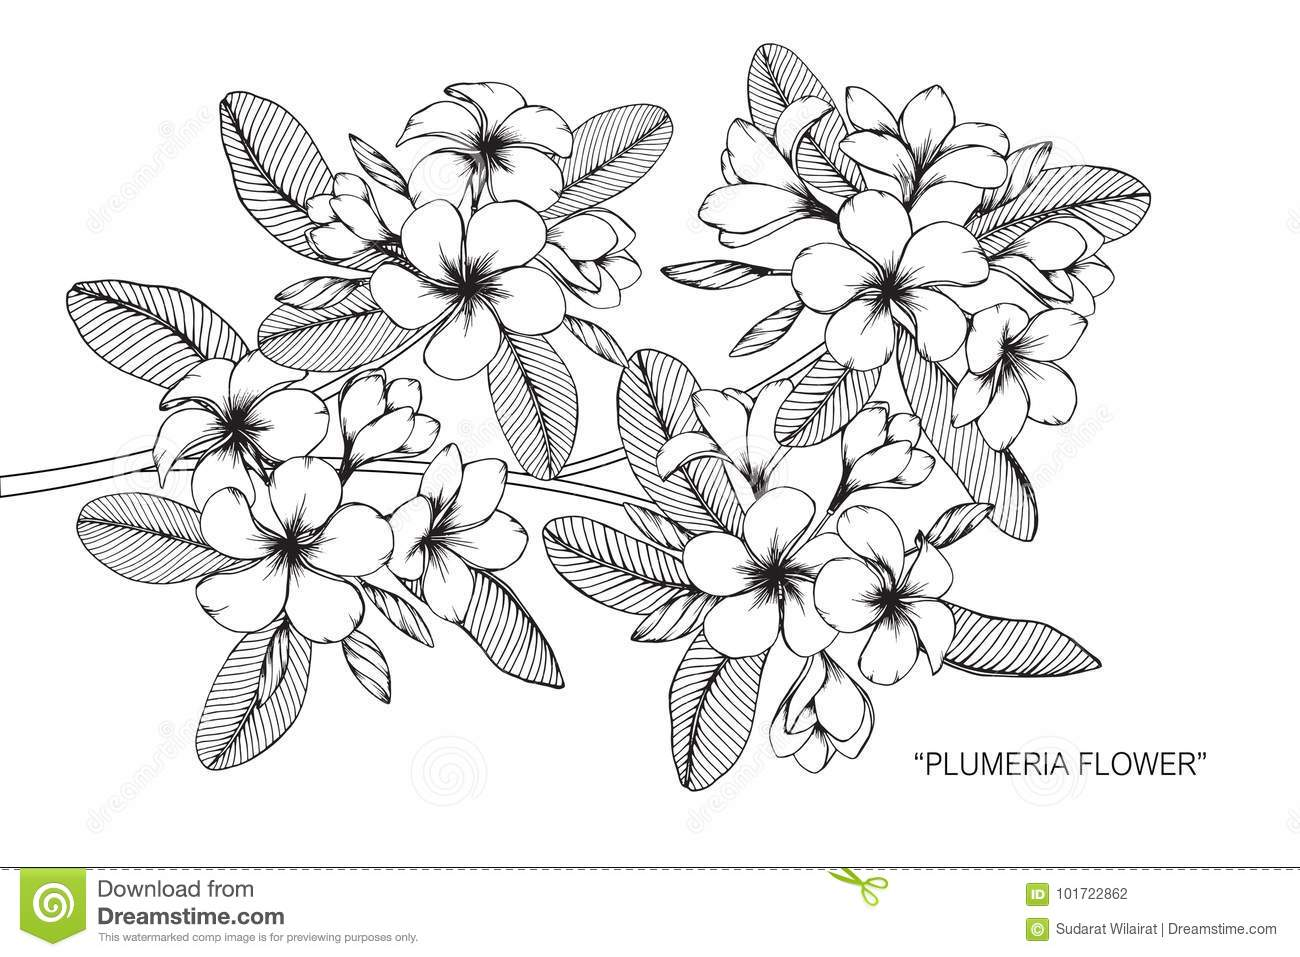 Plumeria Flower Drawing And Sketch Stock Vector Illustration Of Black Flourish 101722862